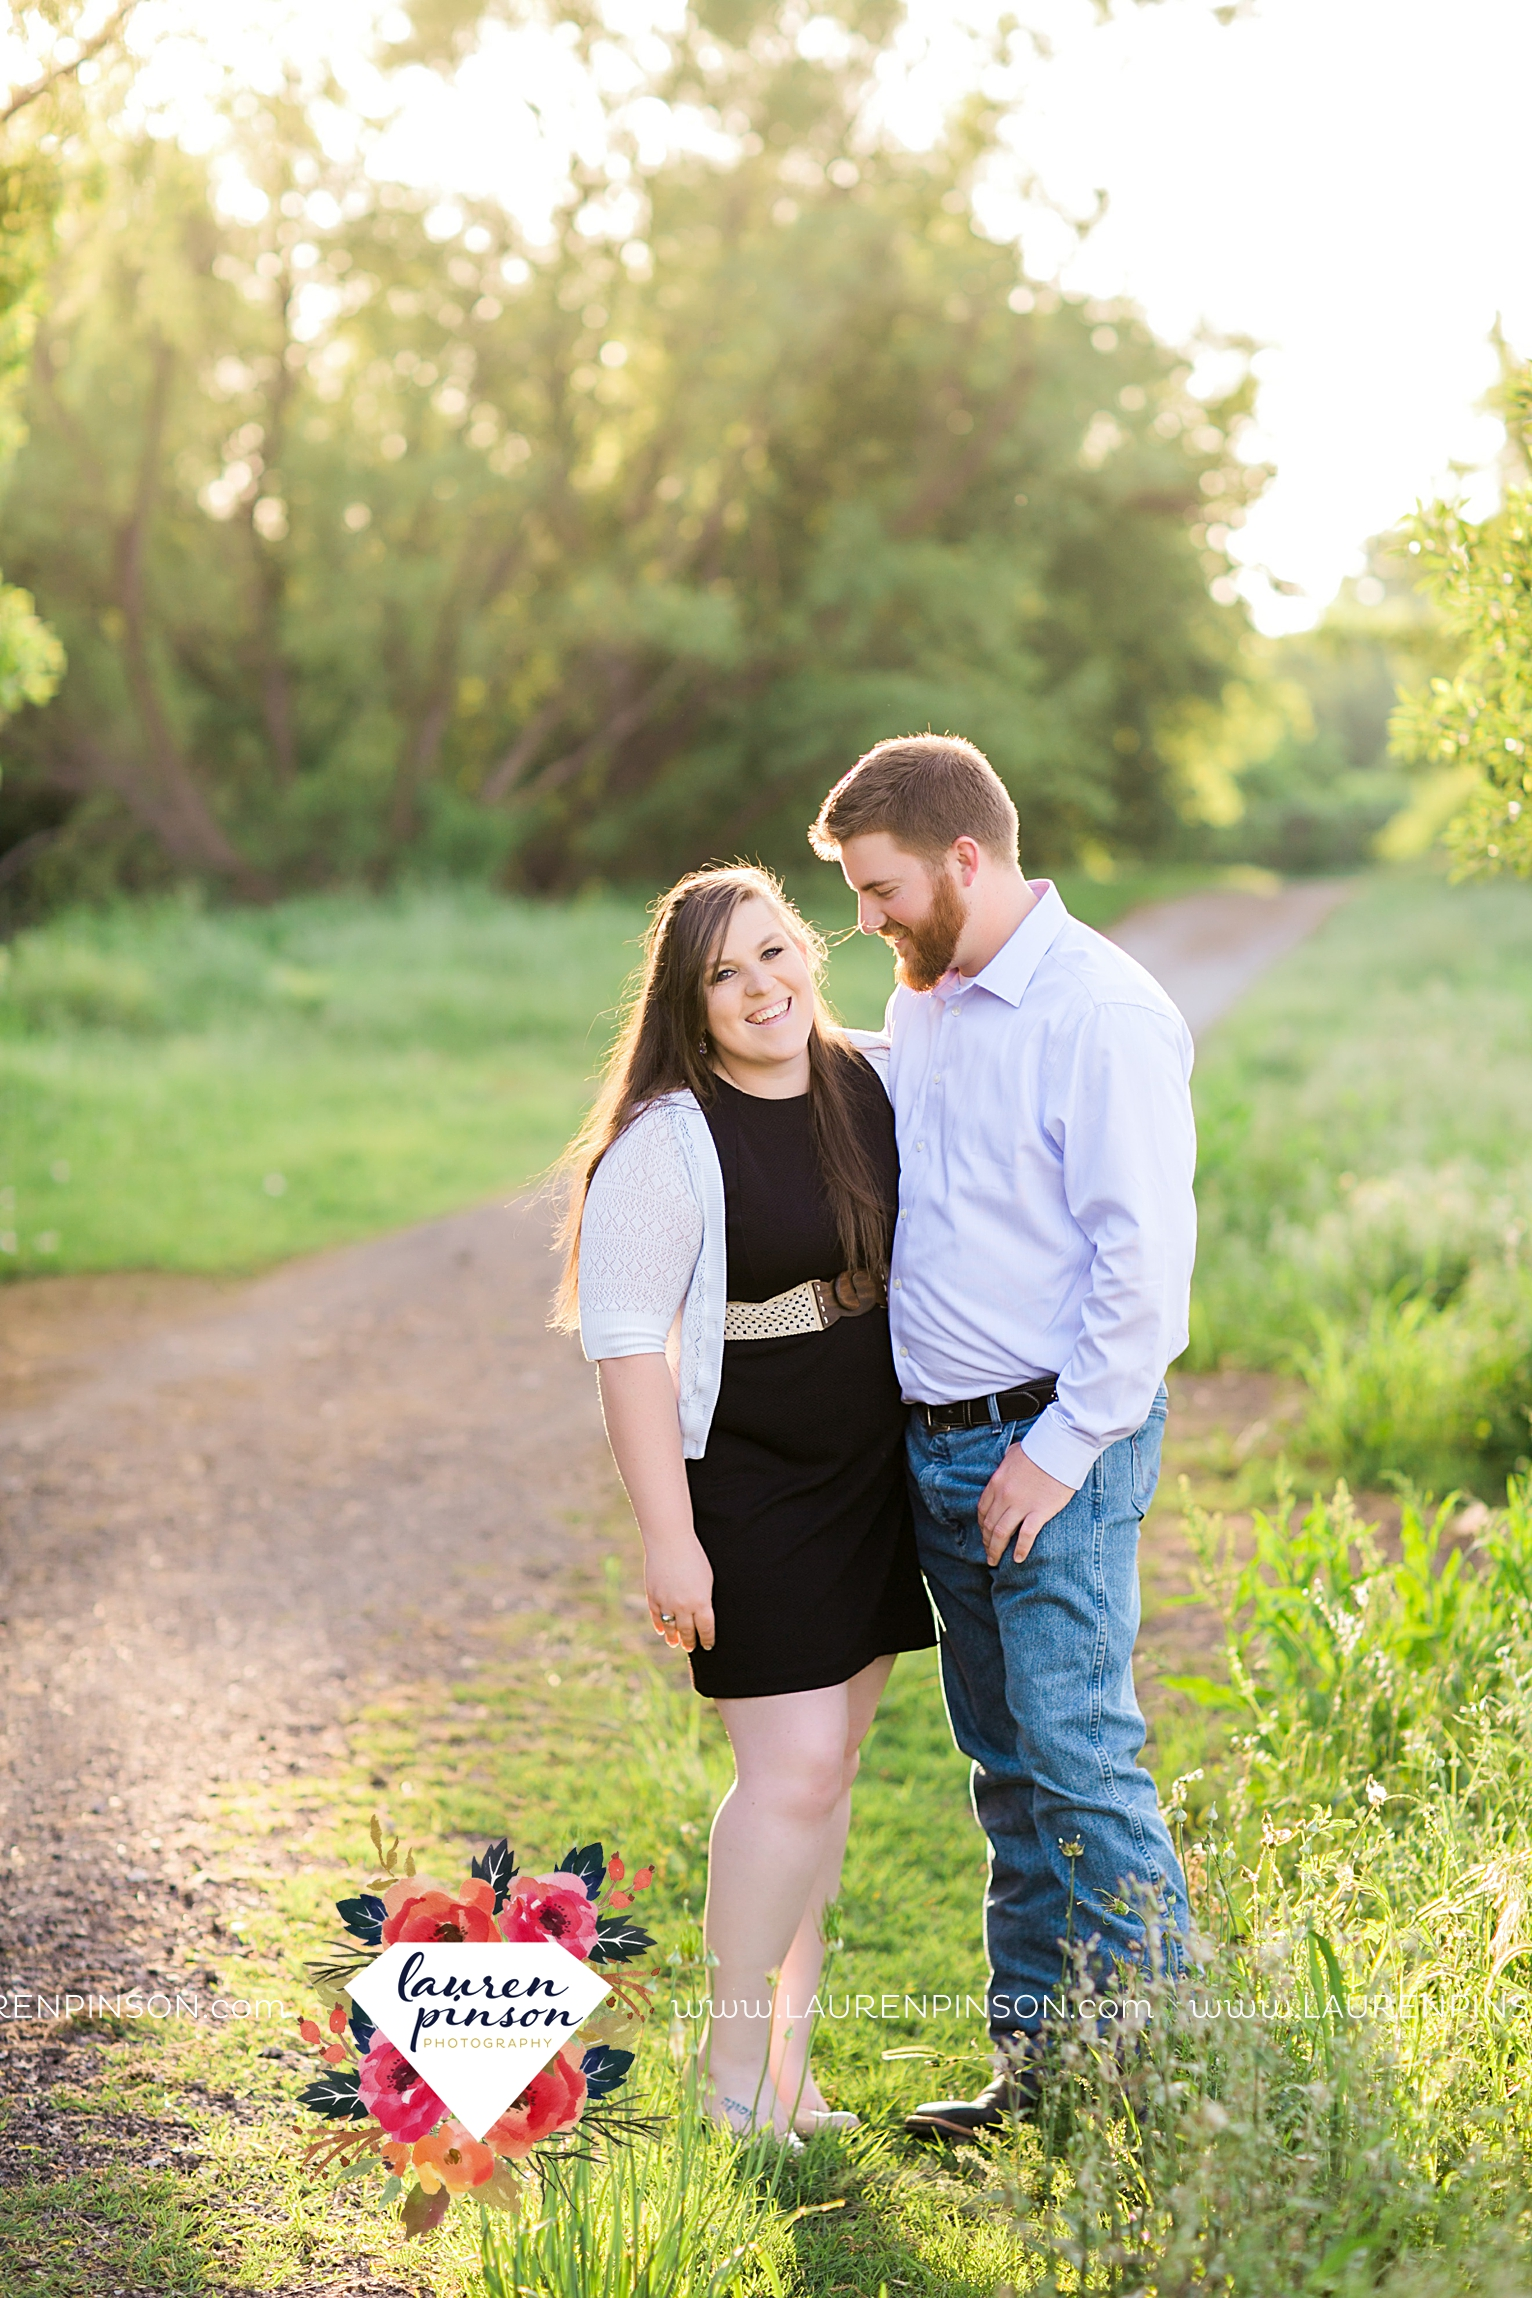 met-on-christian-mingle-texas-engagement-sesion-in-wichita-falls-00004.jpg